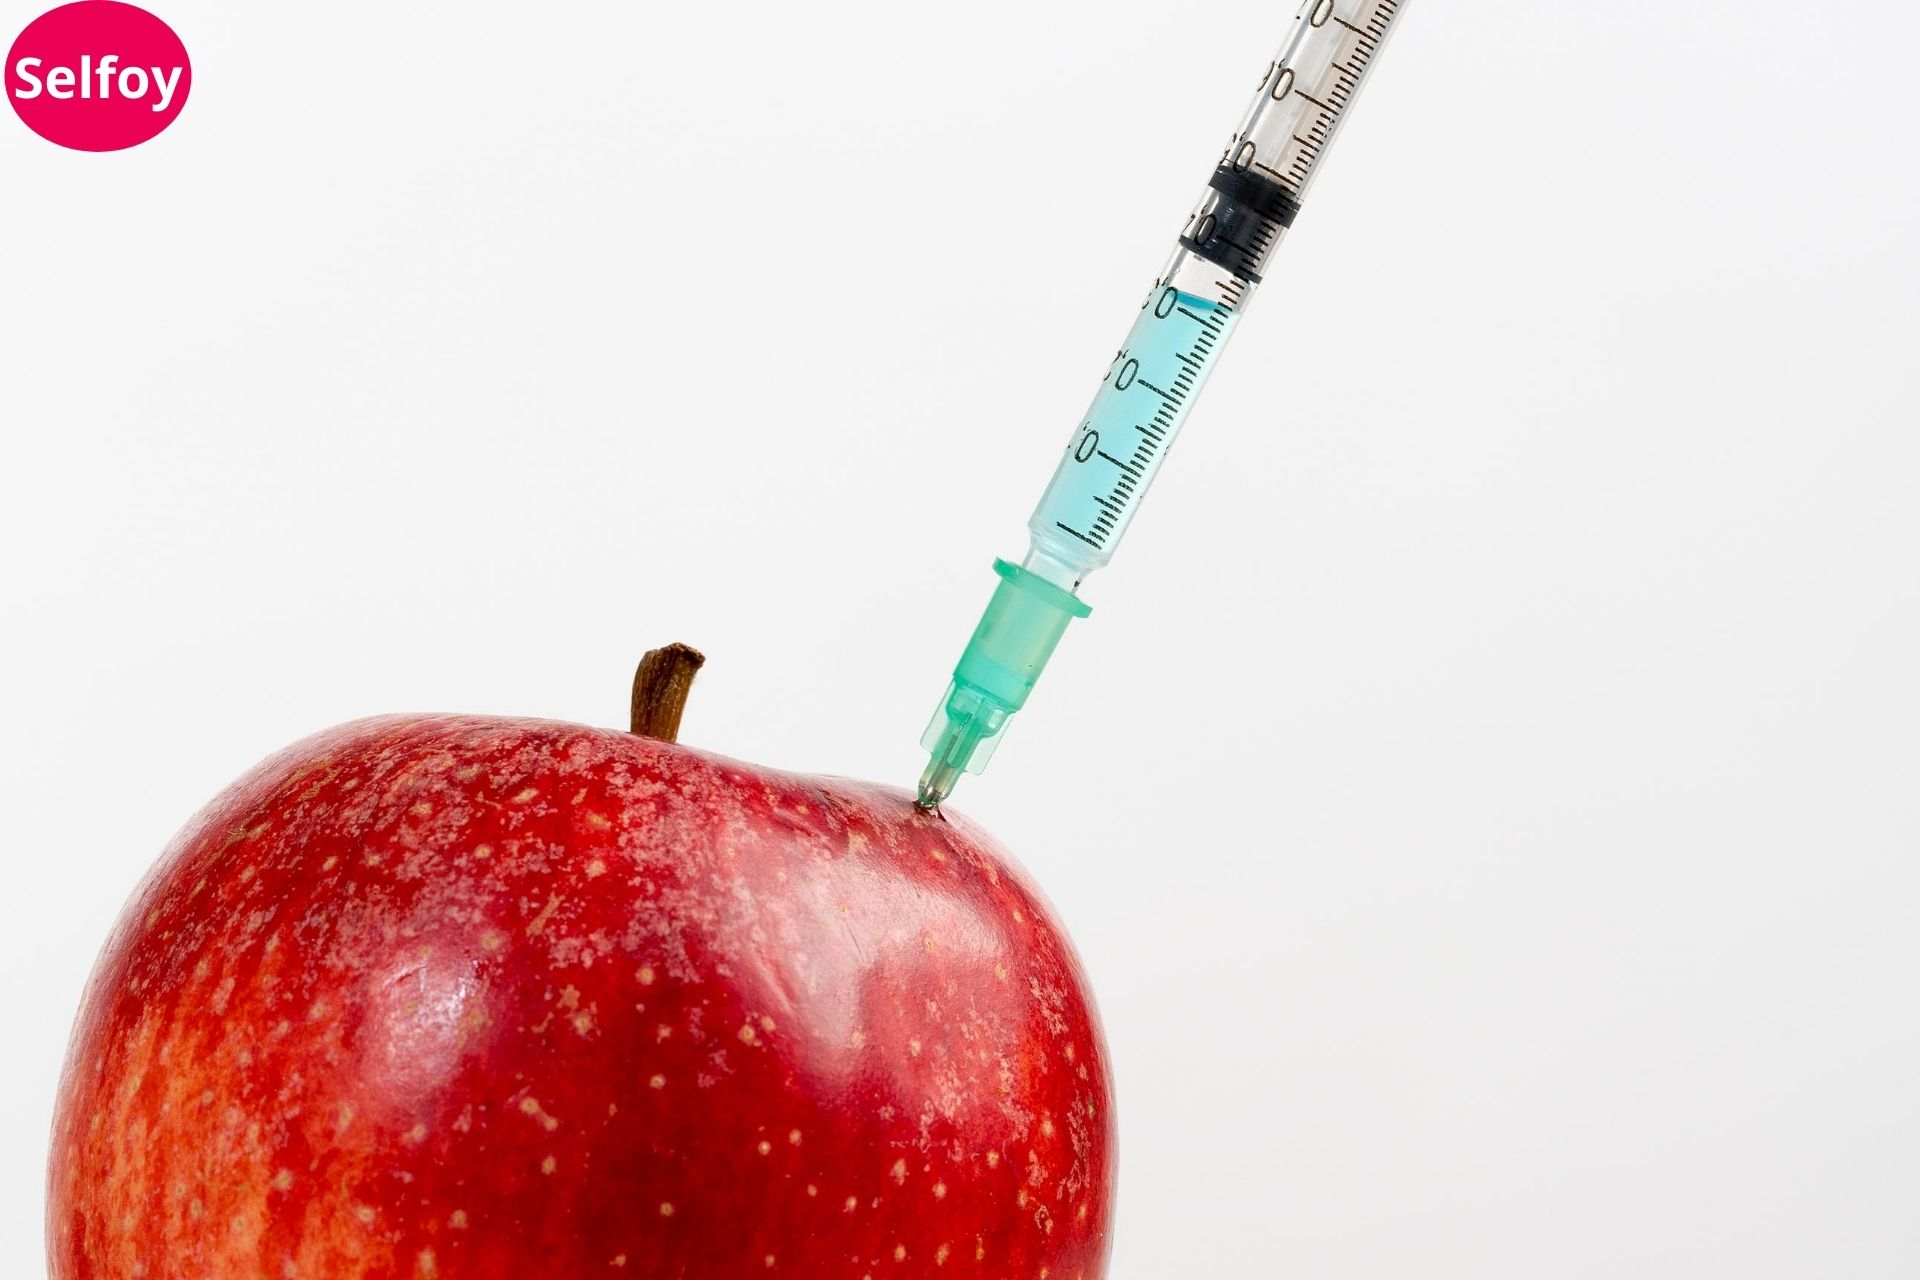 Apple getting injection